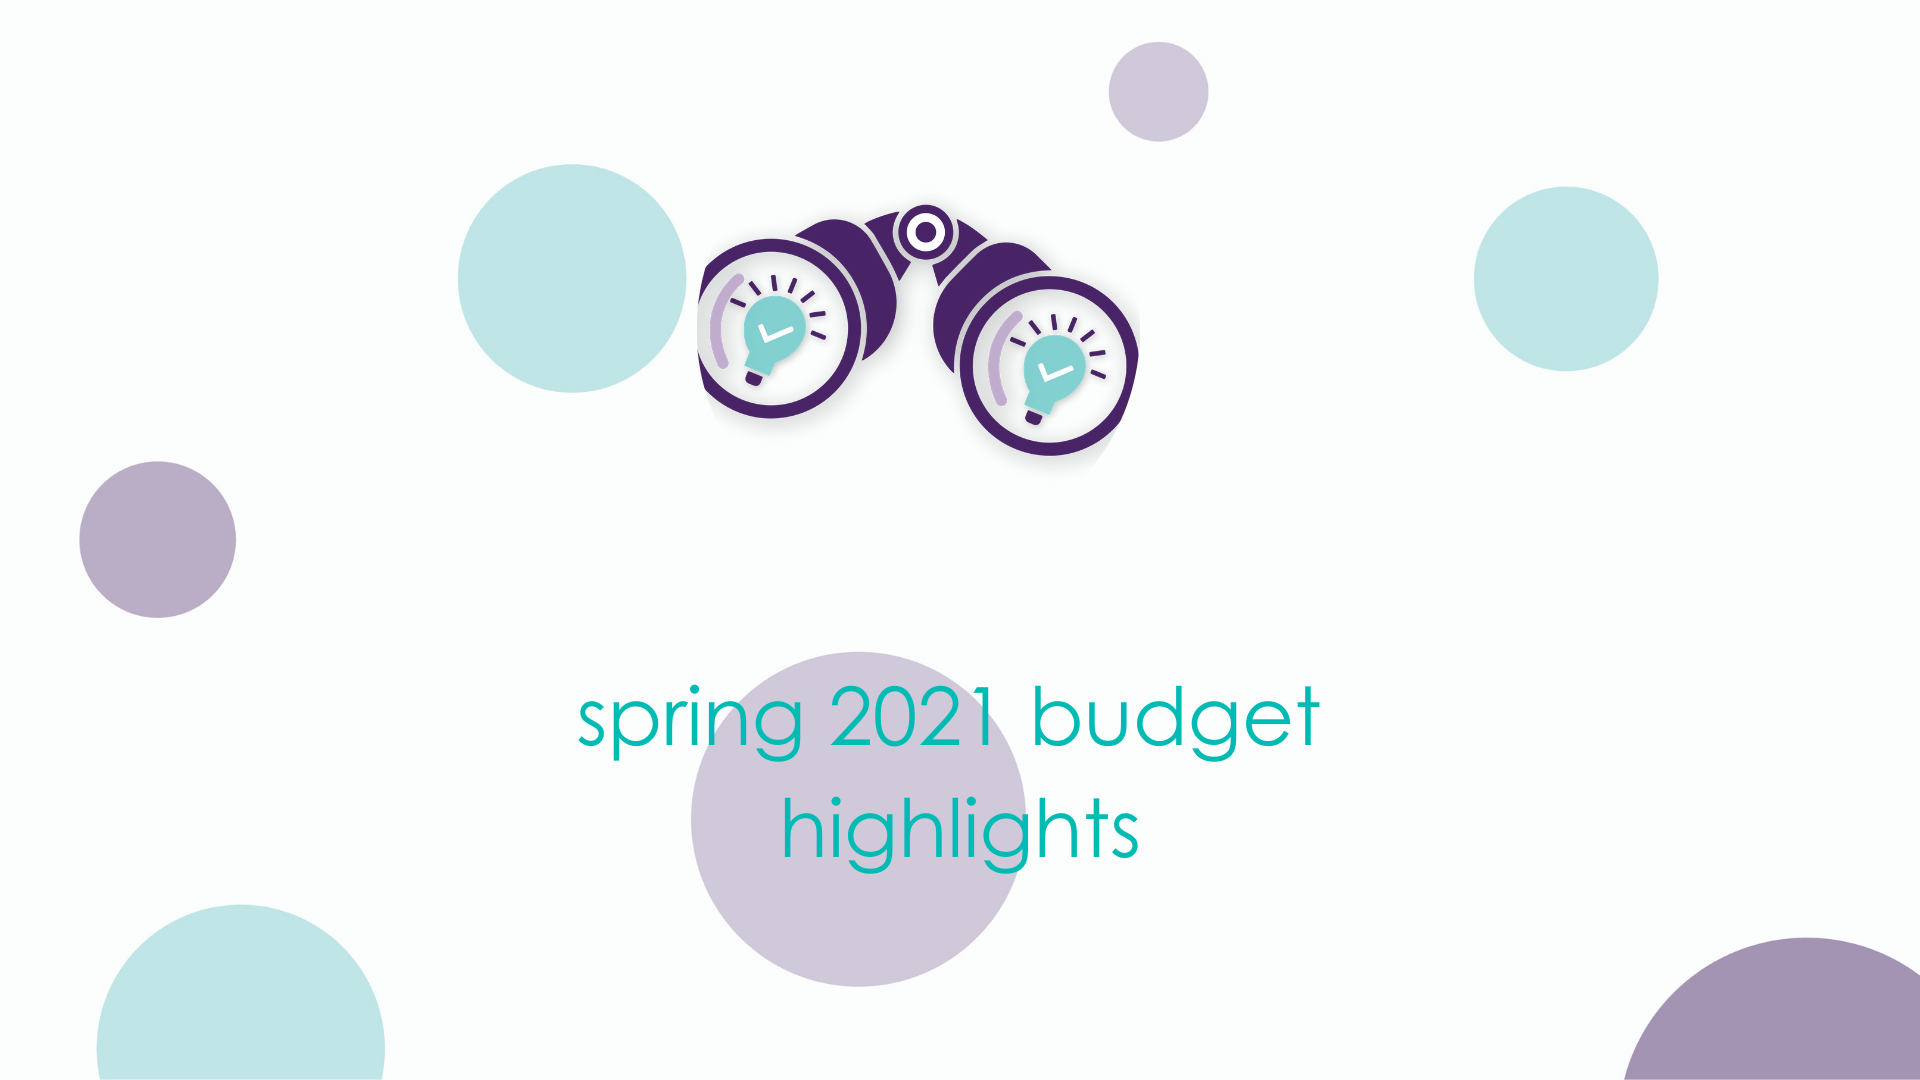 Key highlights from the Spring 2021 Budget